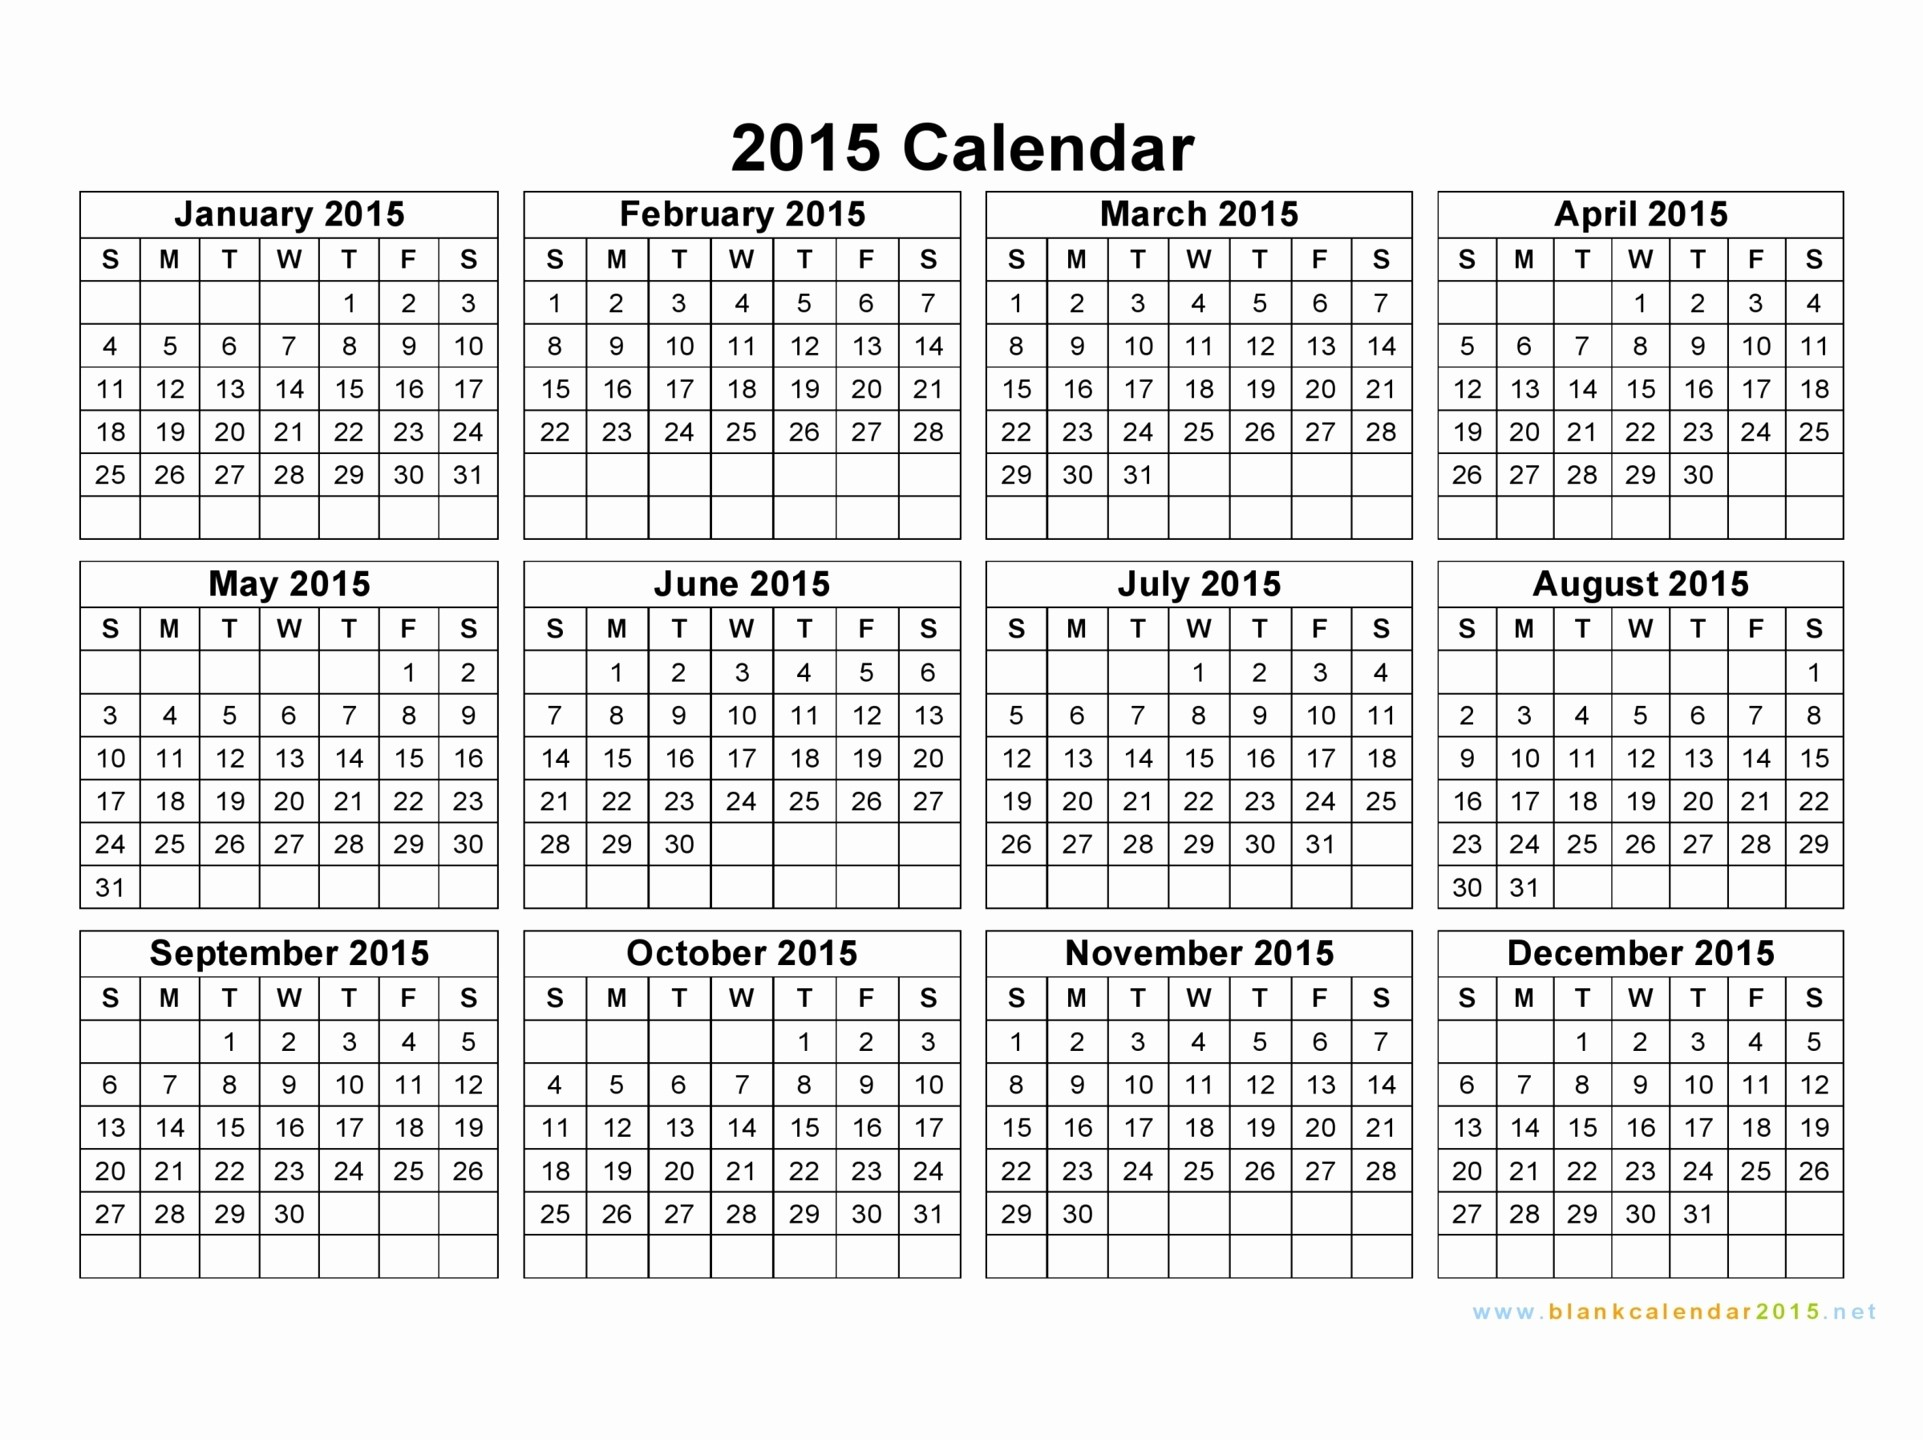 Free Yearly Calendar Templates 2015 Unique Free Printable Yearly Calendar 2015 – 2017 Printable Calendar